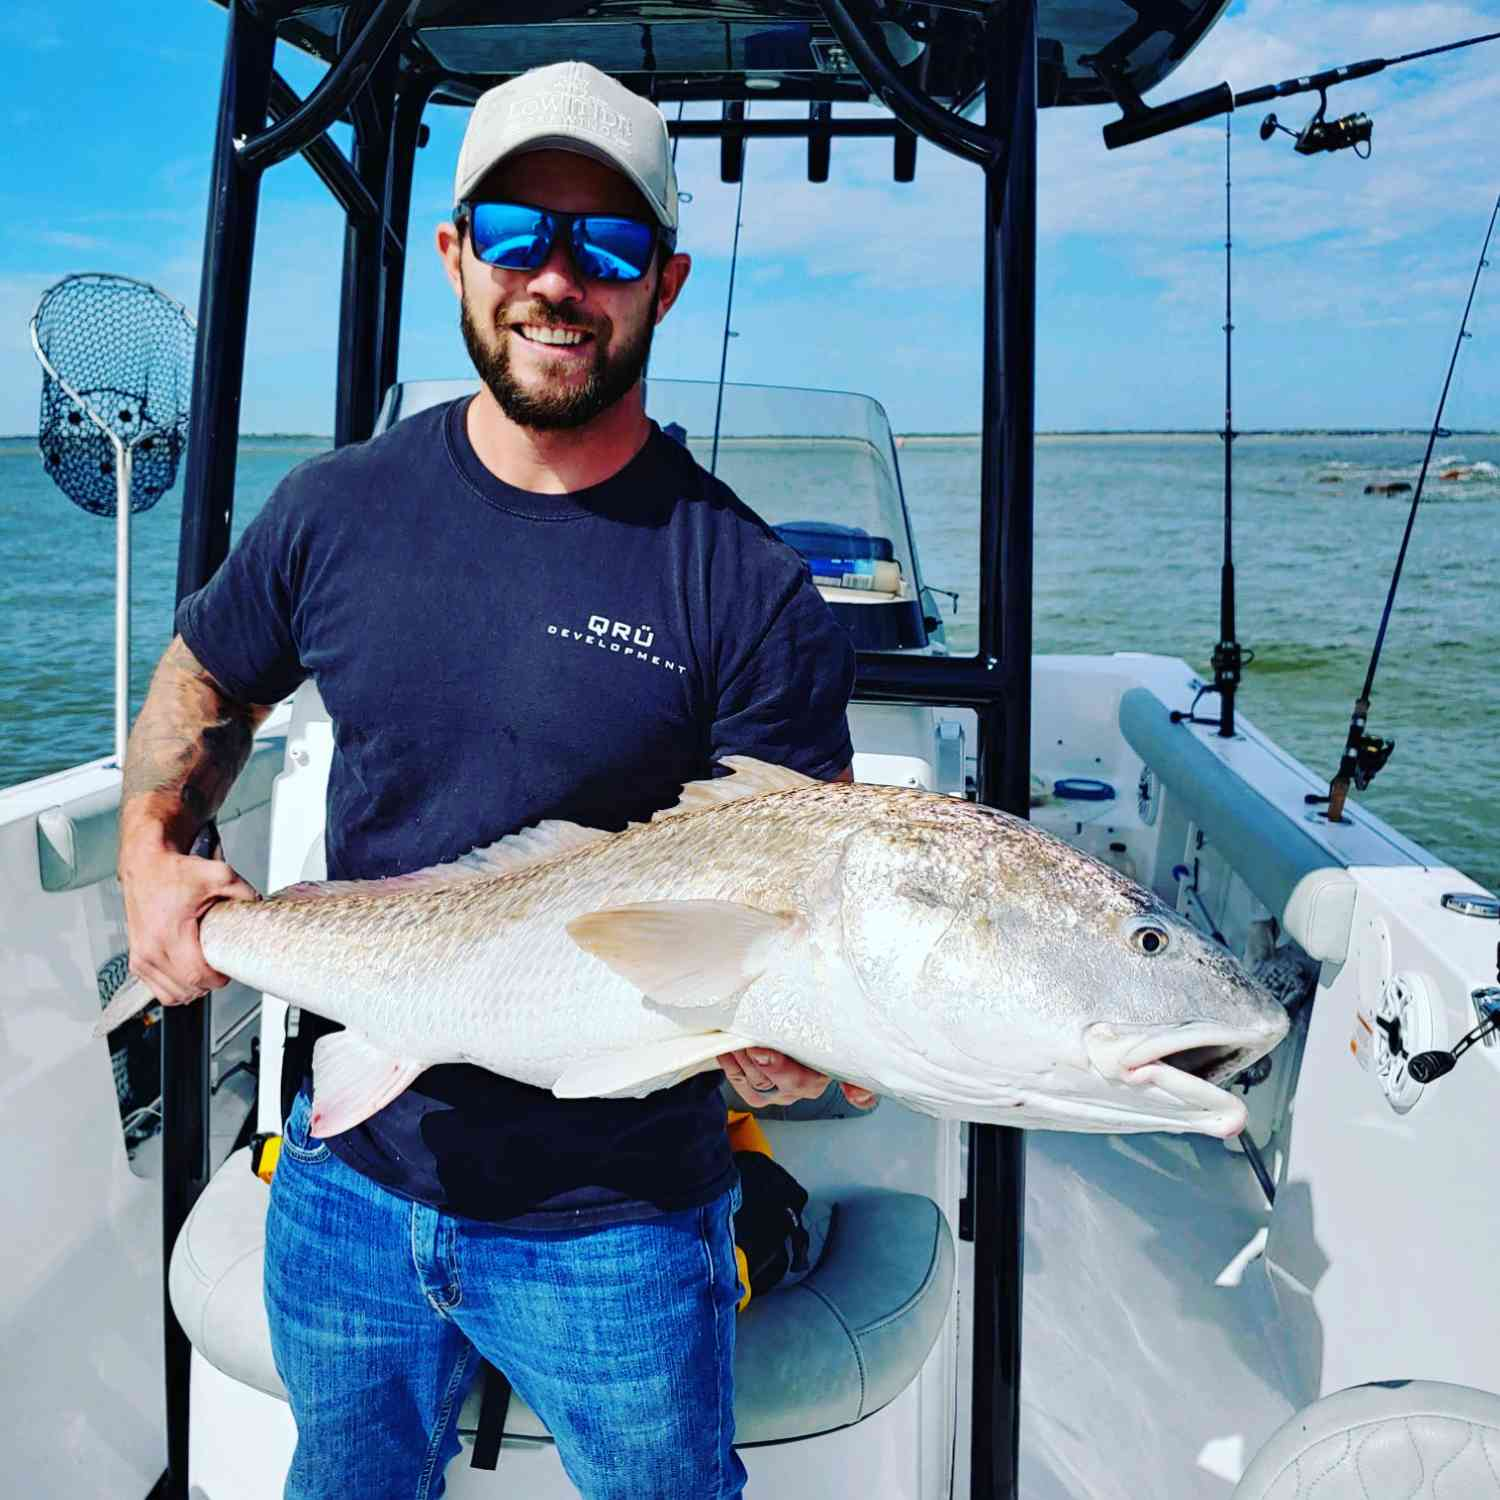 Title: Hunt for Red October - On board their Sportsman Heritage 231 Center Console - Location: Charleston Jetties. Participating in the Photo Contest #SportsmanOctober2020